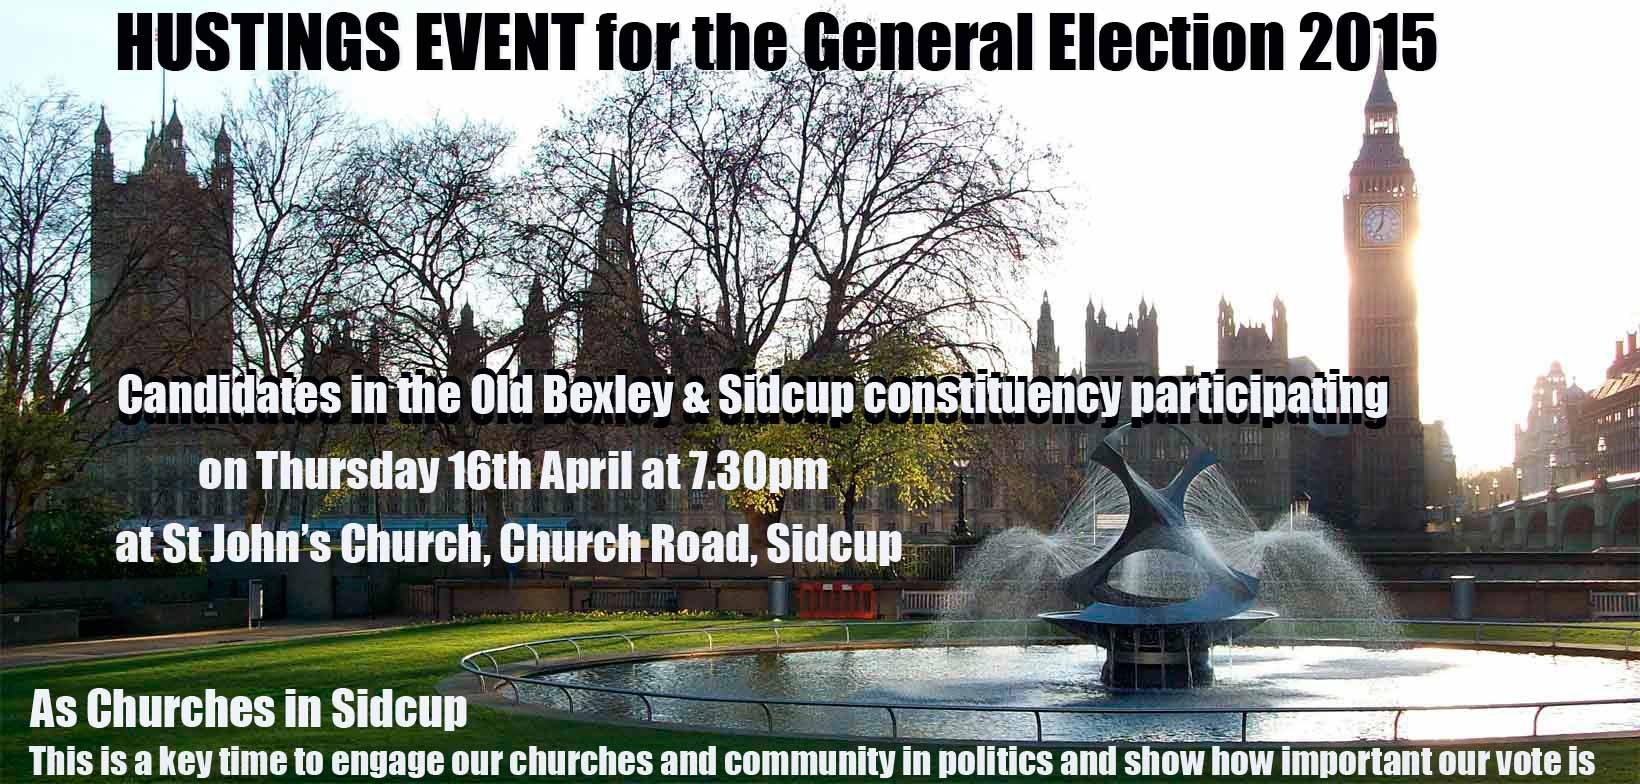 Churches in Sidcup Hustings Event